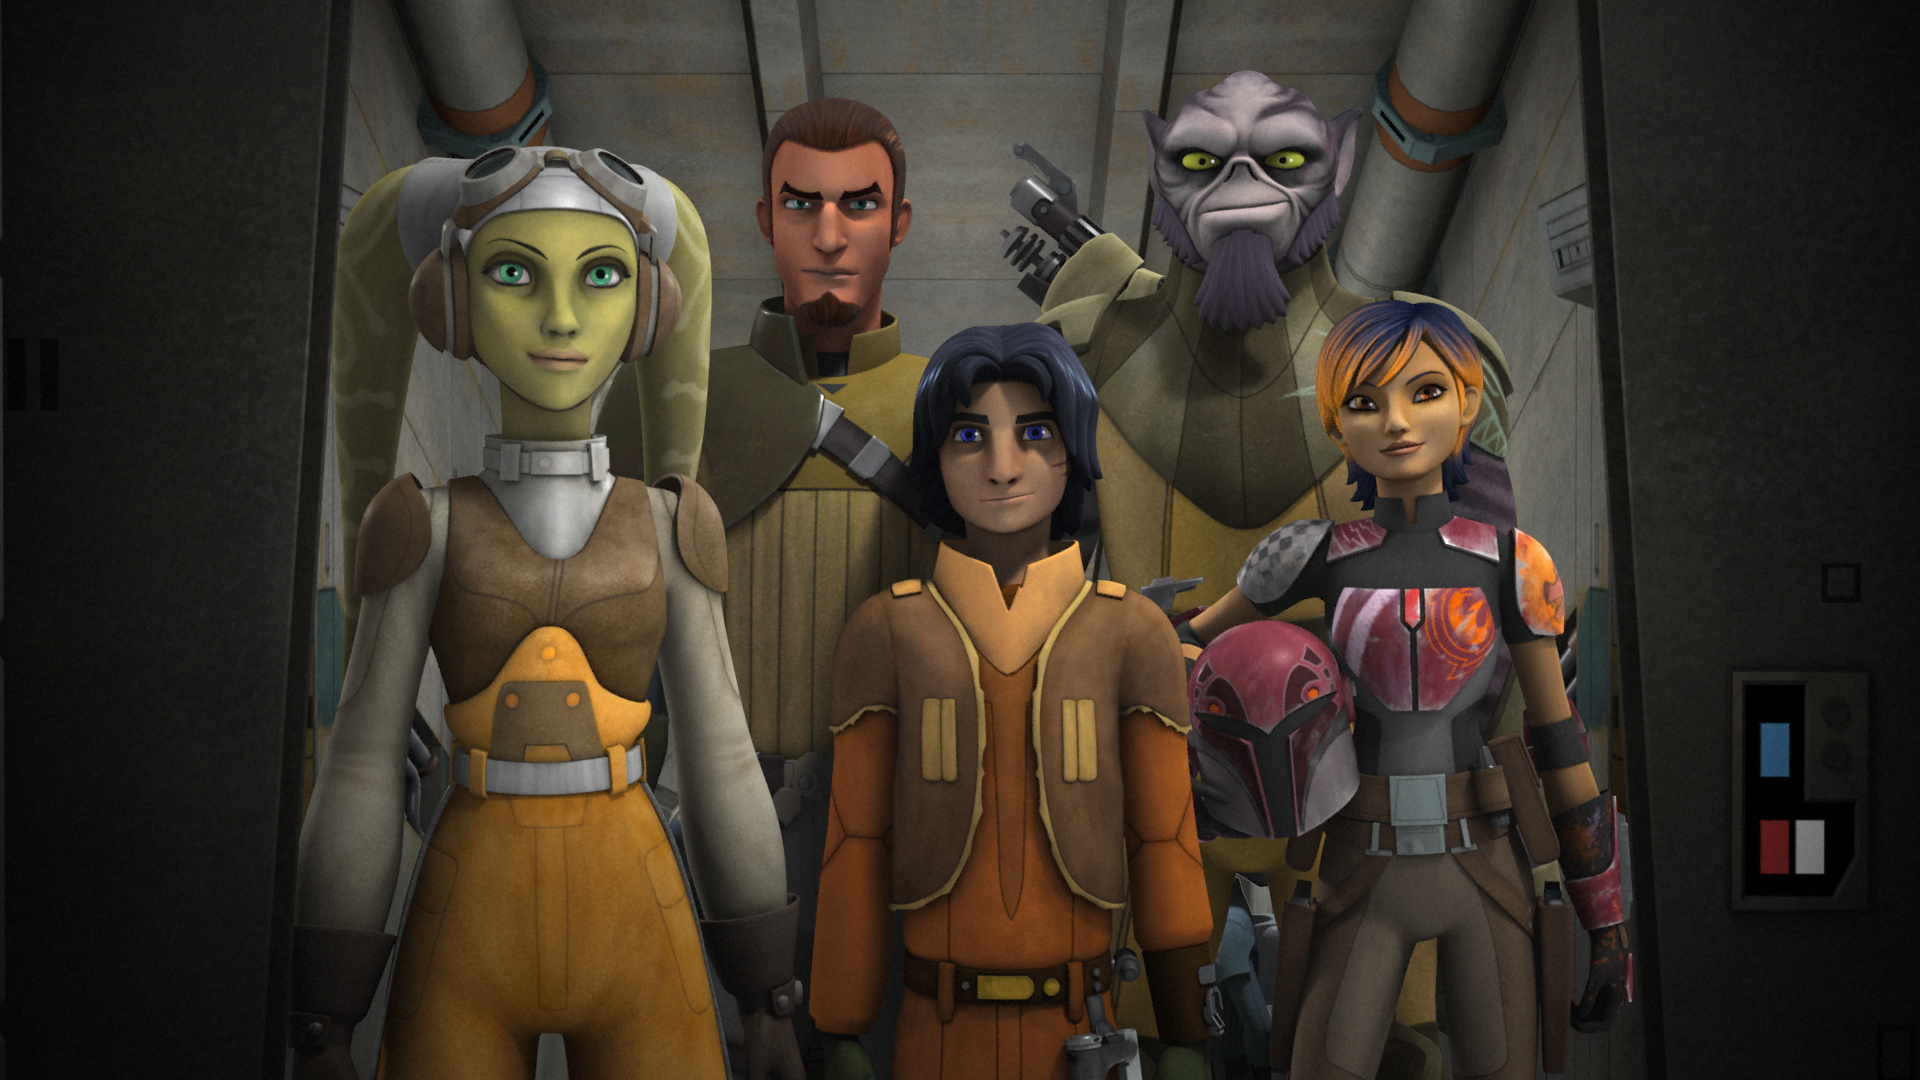 Star Wars Rebels Wallpaper 1920x1080 Wallpaper Teahub Io